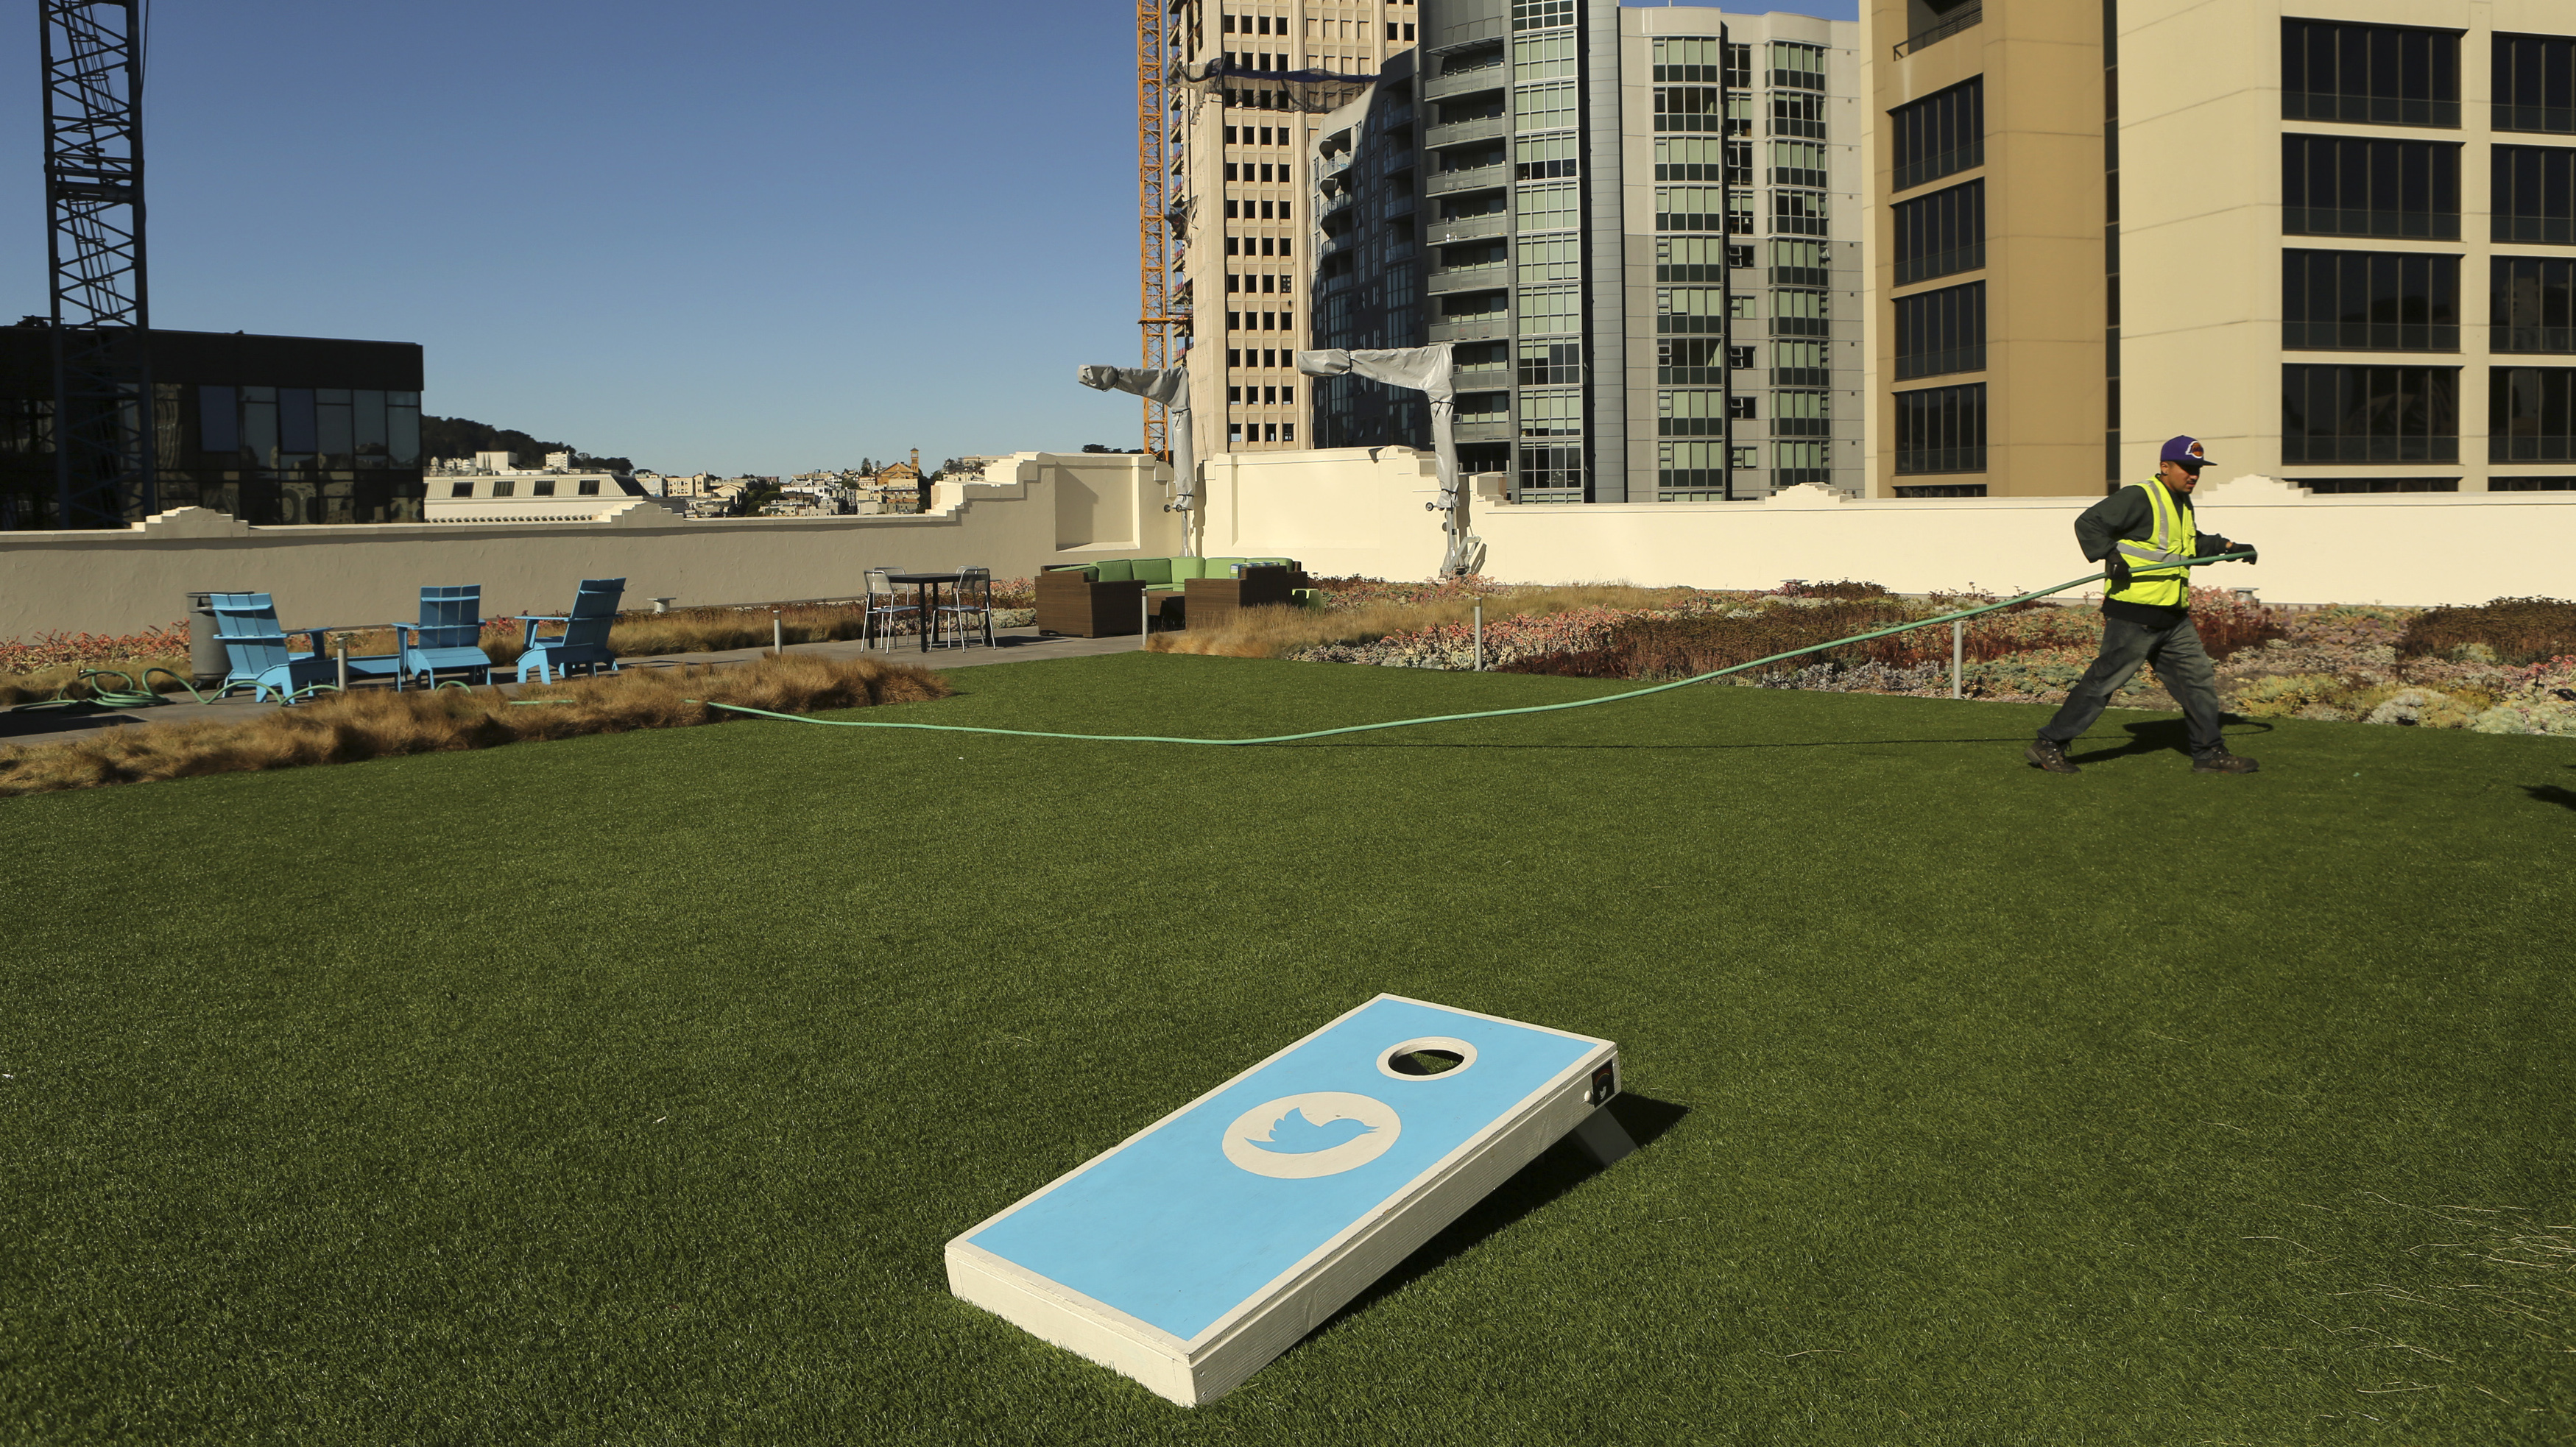 A worker tends to the lawn on the roof of Twitter headquarters in San Francisco, California October 4, 2013. Twitter Inc, racing toward the largest Silicon Valley IPO since Facebook Inc's 2012 coming-out party, hopes to woo investors with rip-roaring revenue growth despite having posted big losses over the past three years. The eight-year-old online messaging service gave potential investors their first glance at its financials on Thursday when it publicly filed its IPO documents, setting the stage for one of the most-anticipated debuts in over a year.   REUTERS/Robert Galbraith  (UNITED STATES - Tags: SCIENCE TECHNOLOGY BUSINESS) - RTR3FLRJ